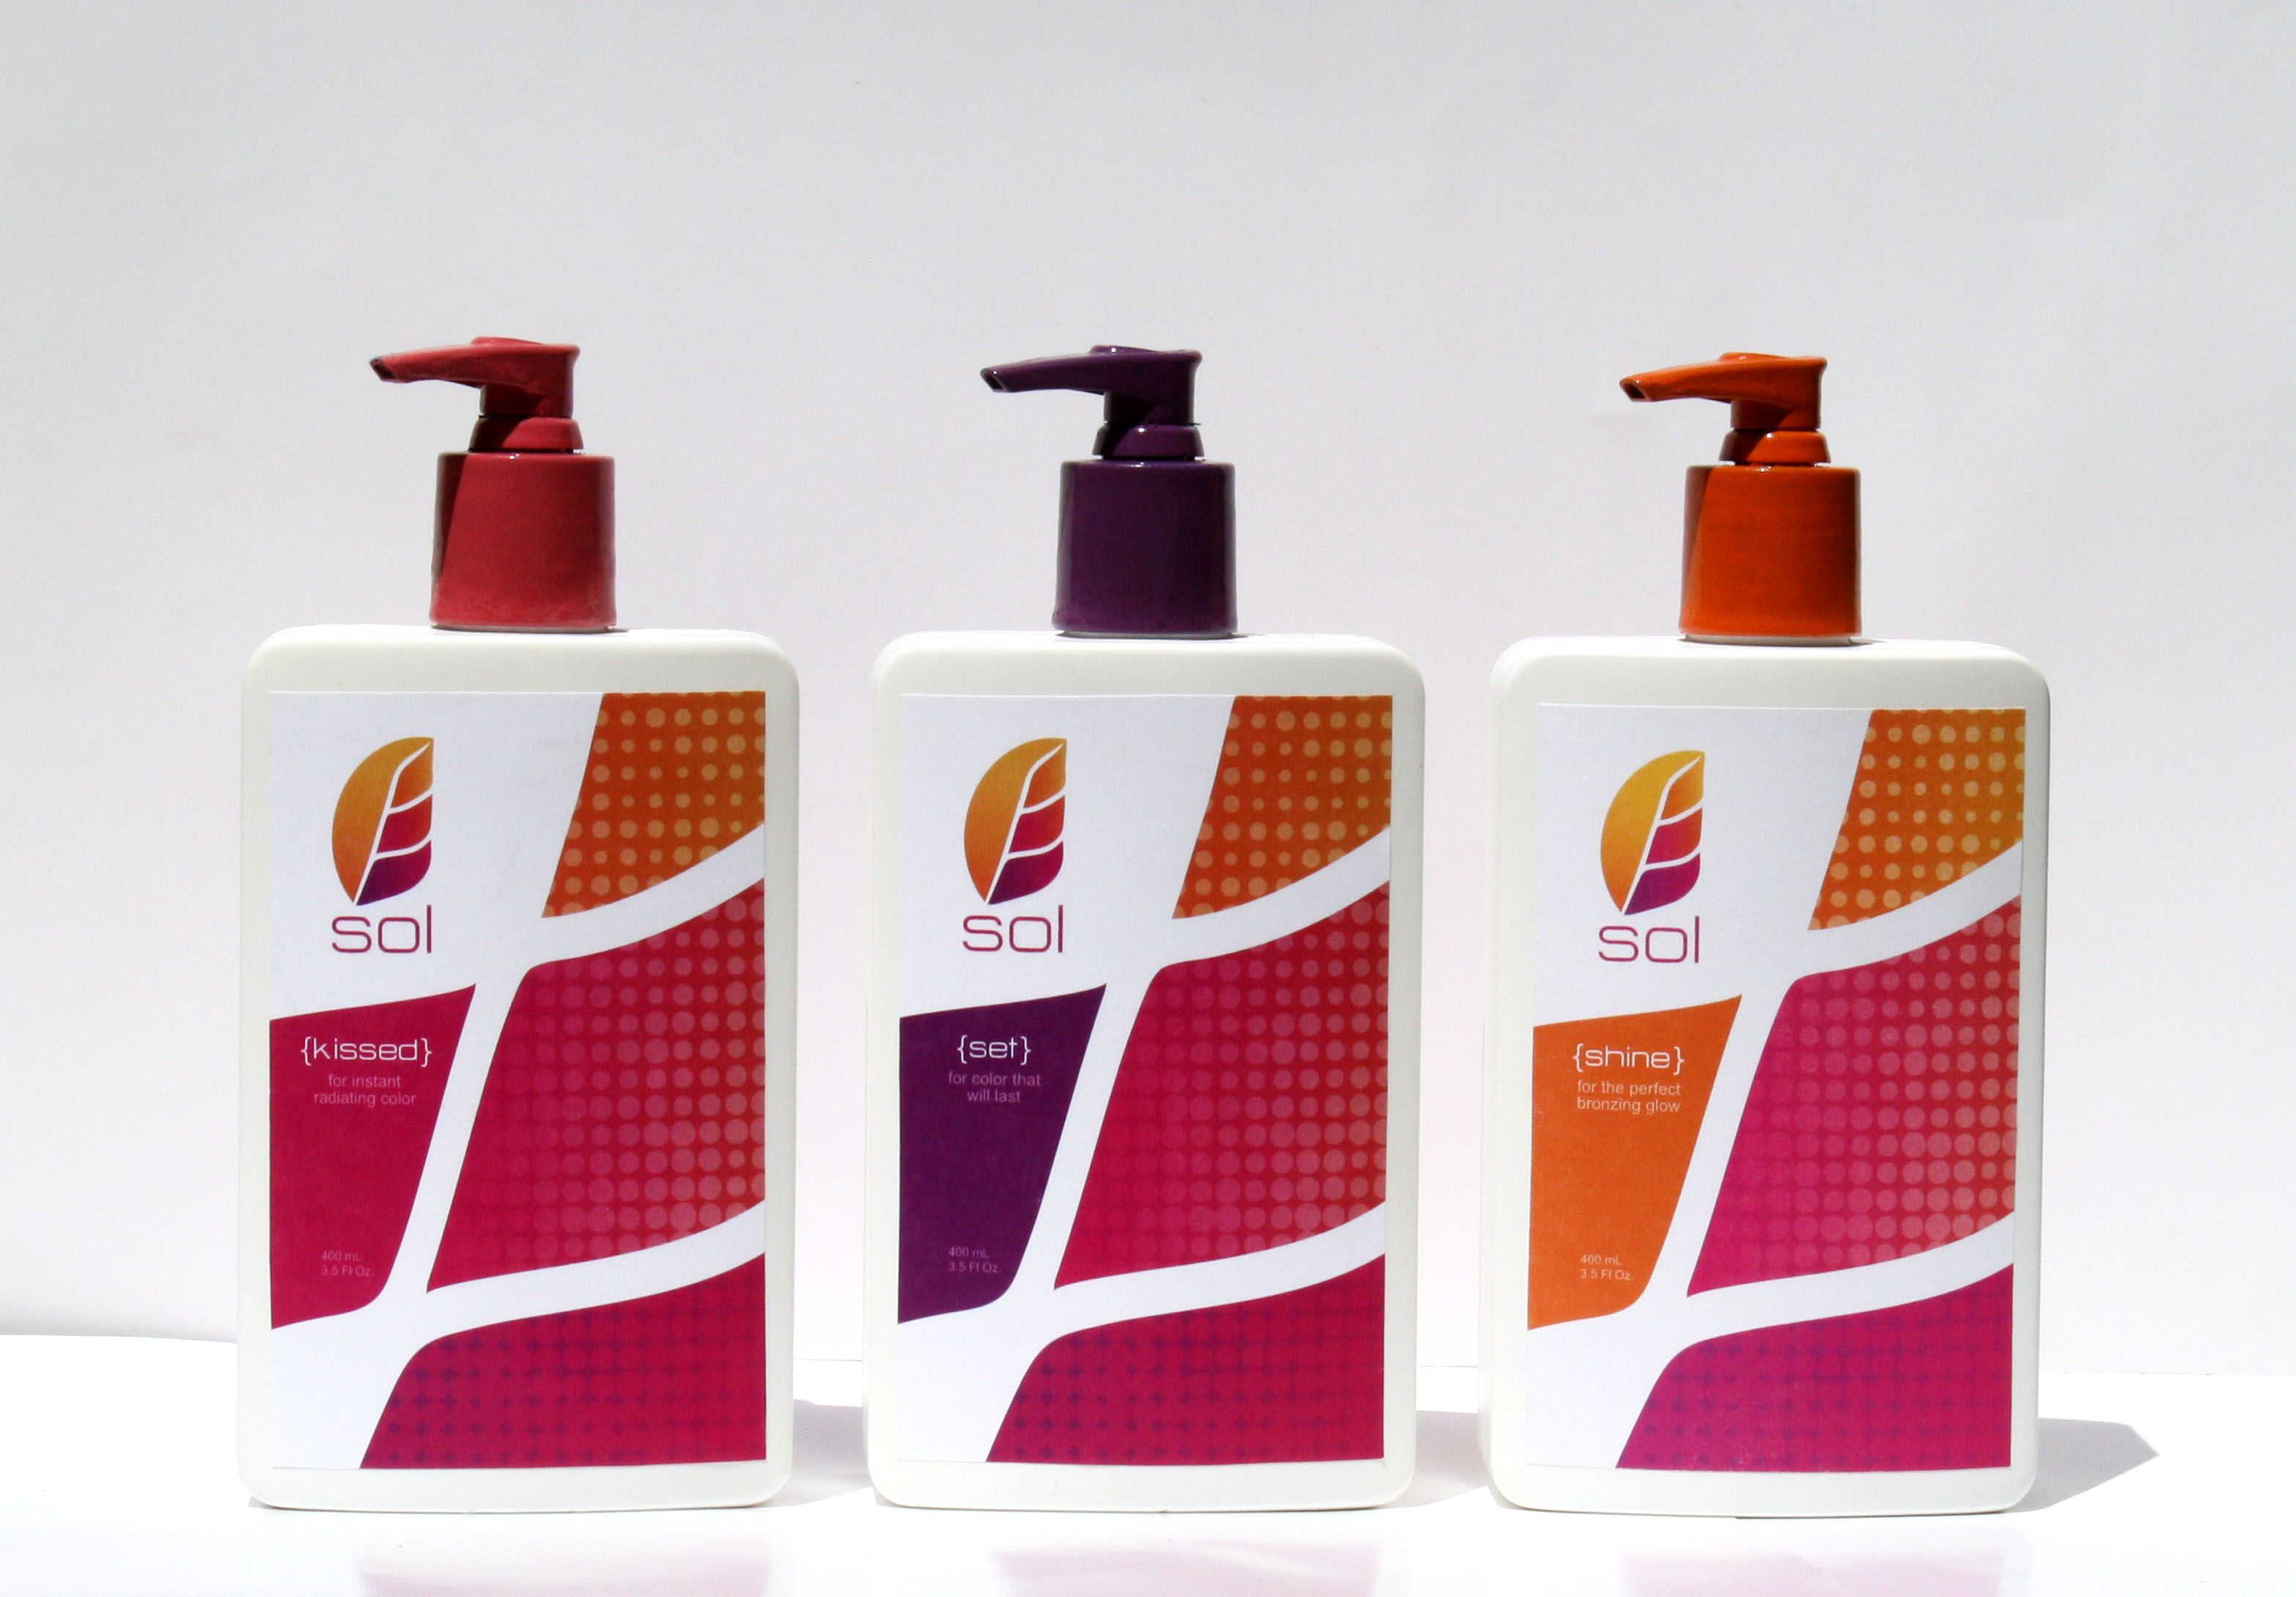 tanning lotion packaging (front)